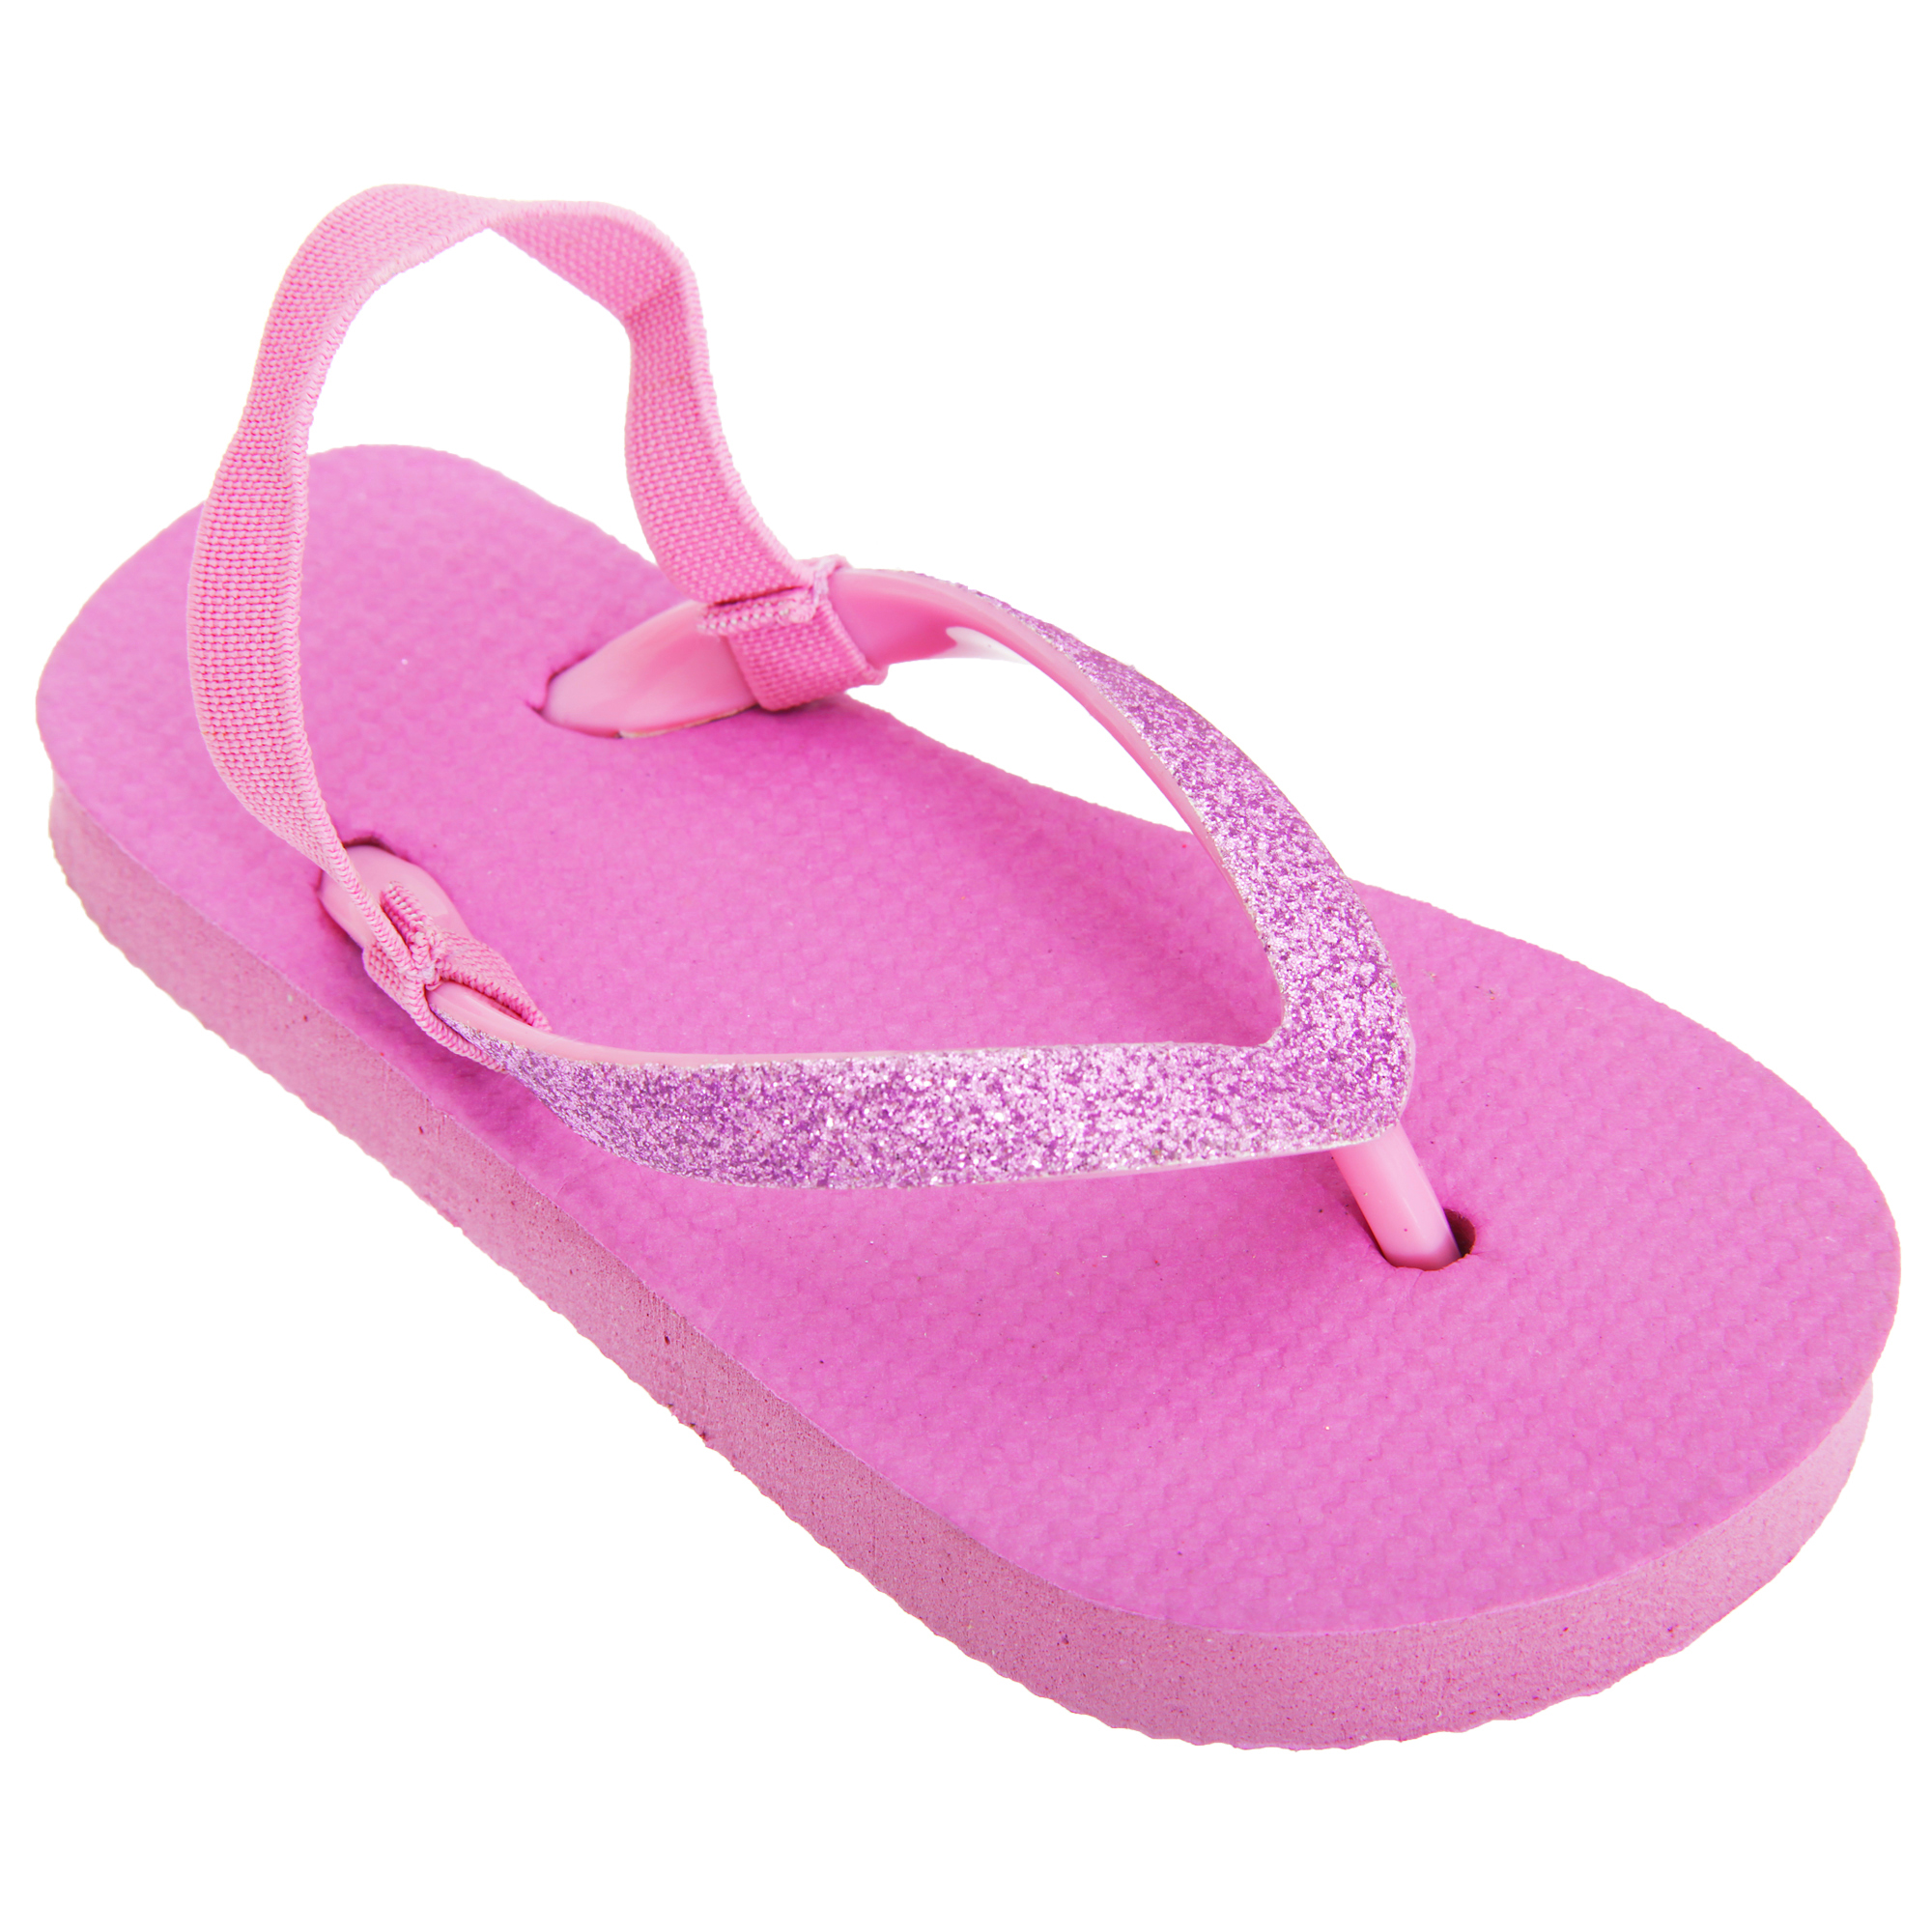 floso kinder m dchen flip flops mit glitter riemen ebay. Black Bedroom Furniture Sets. Home Design Ideas